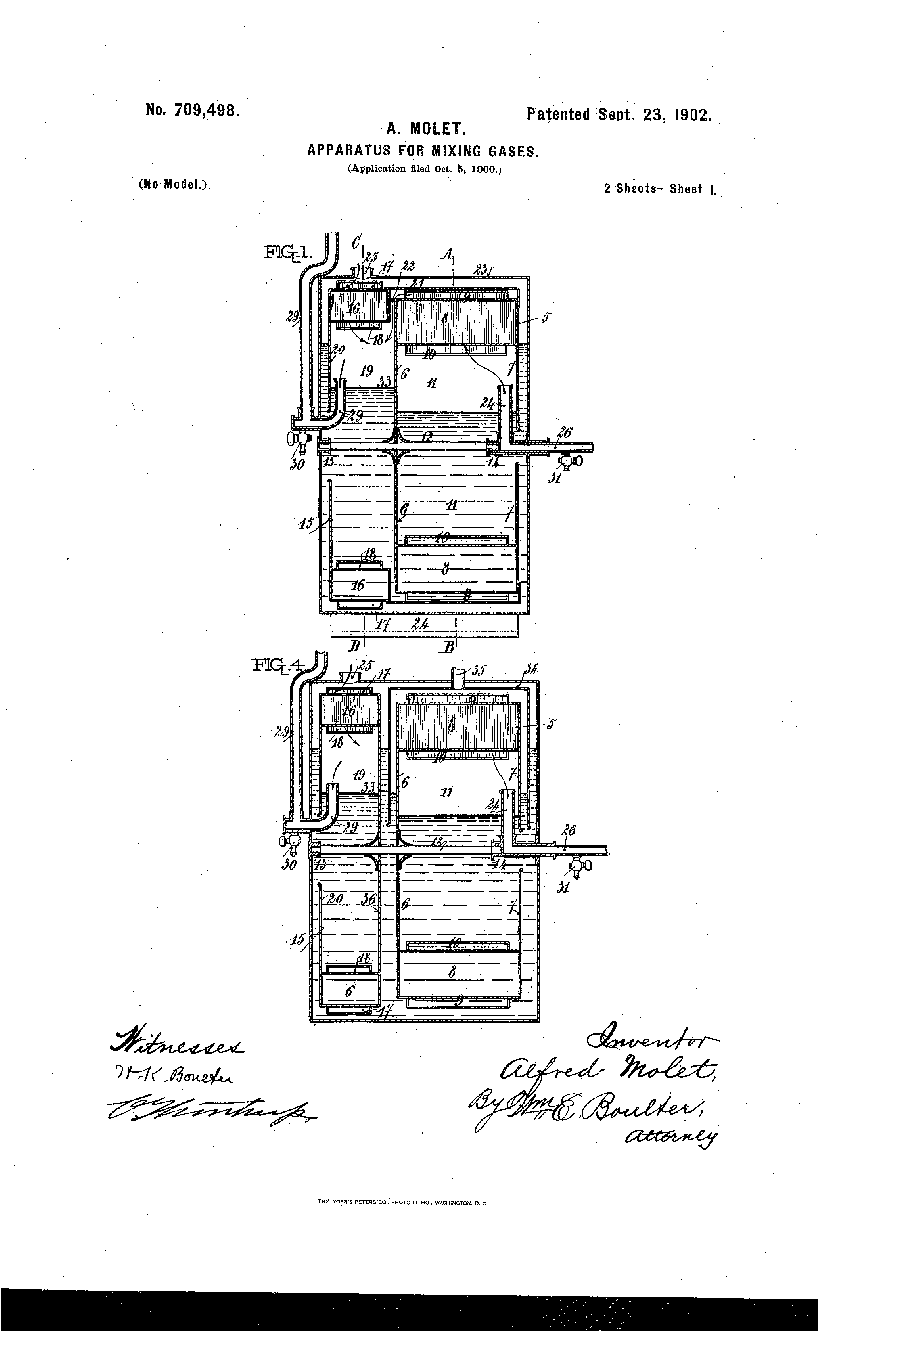 US709498-0.png